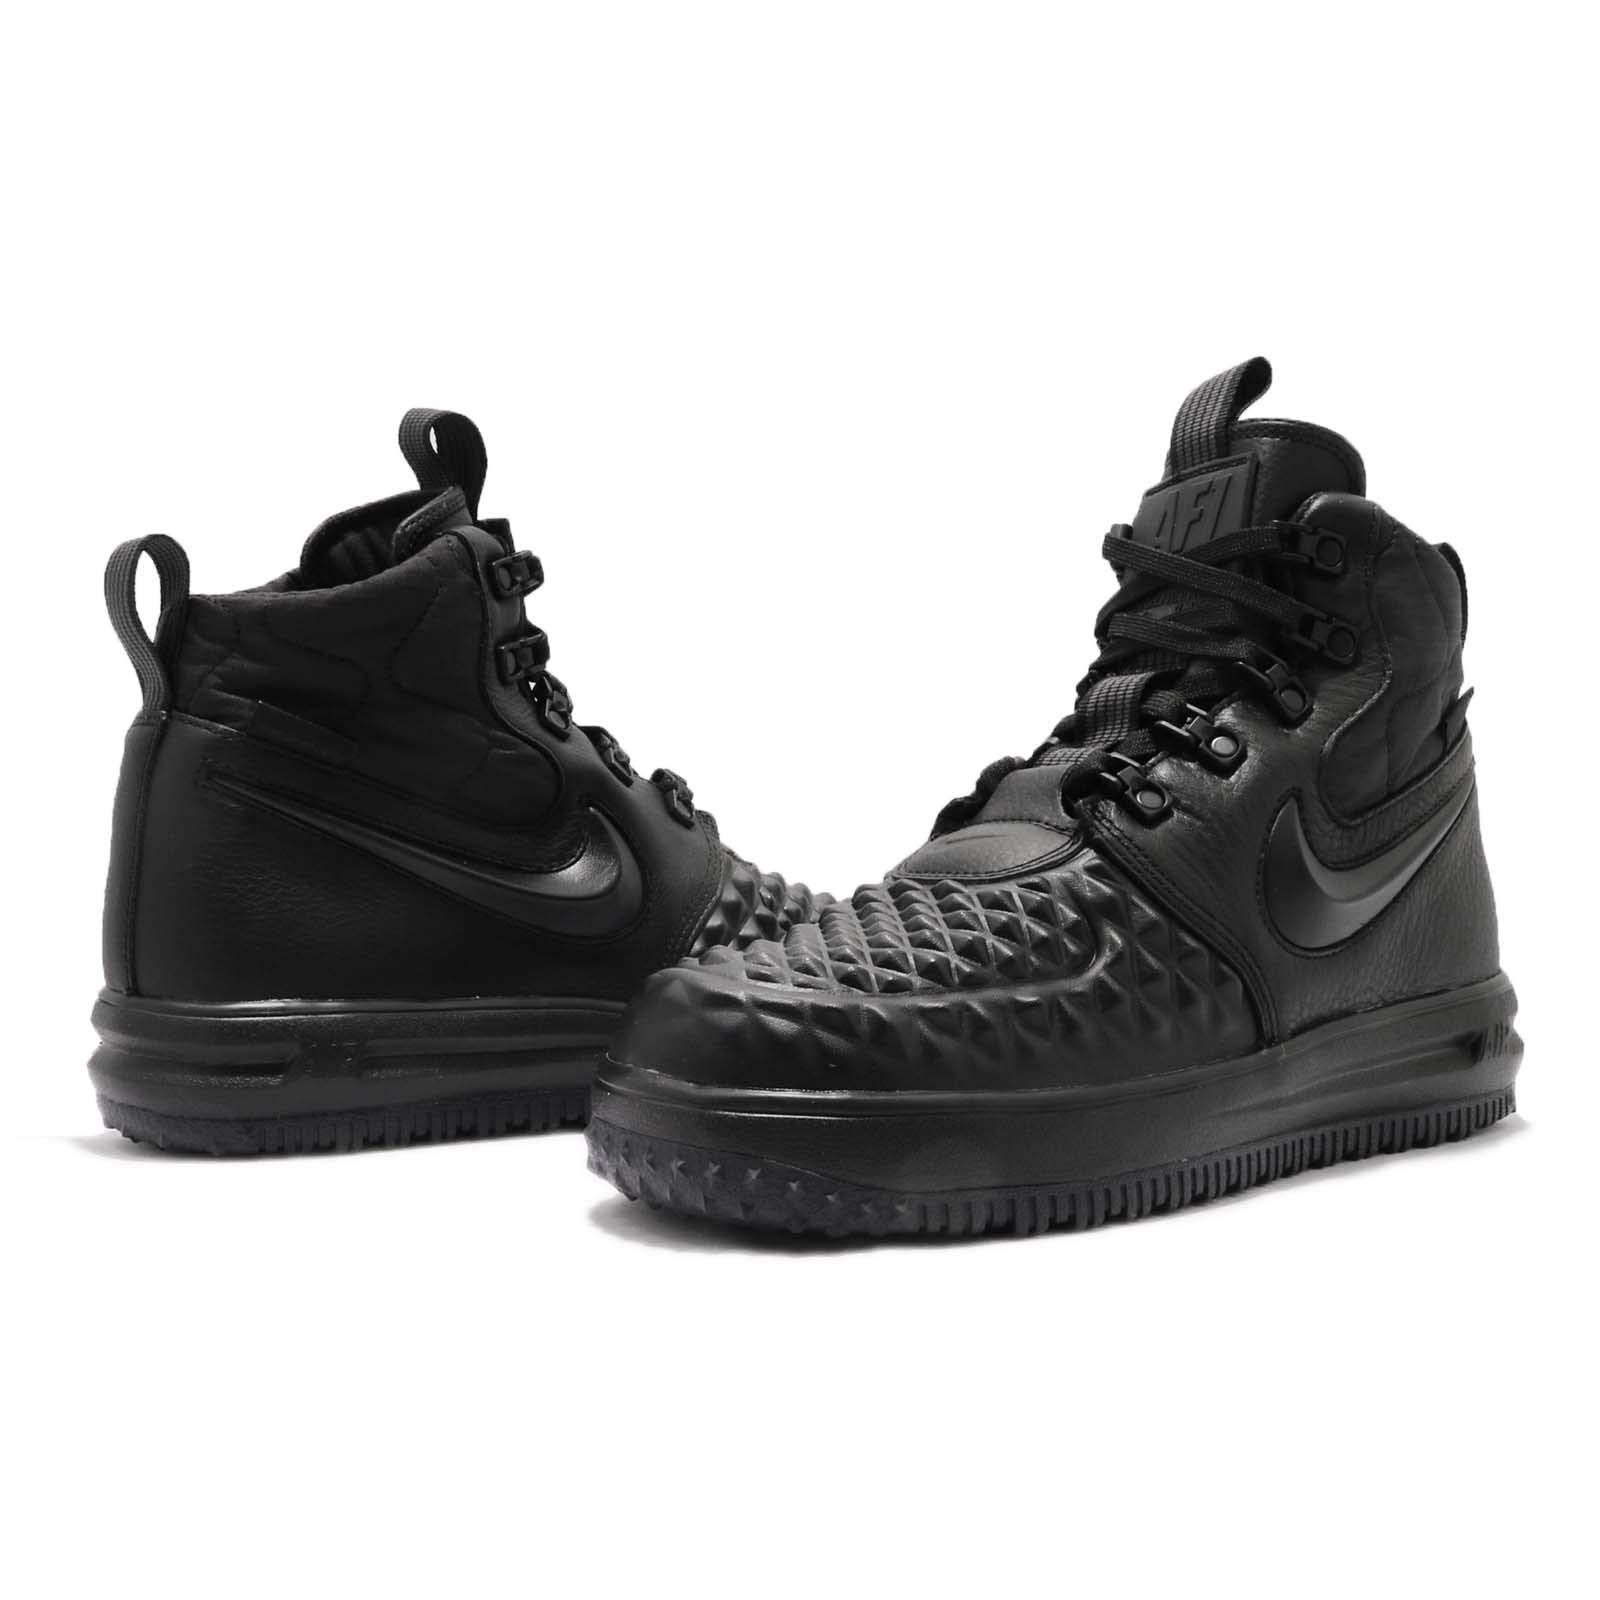 Nike Kid's LF1 Duckboot 17 GS, Black/Black-Anthracite, Youth Size 3.5 by Nike (Image #6)